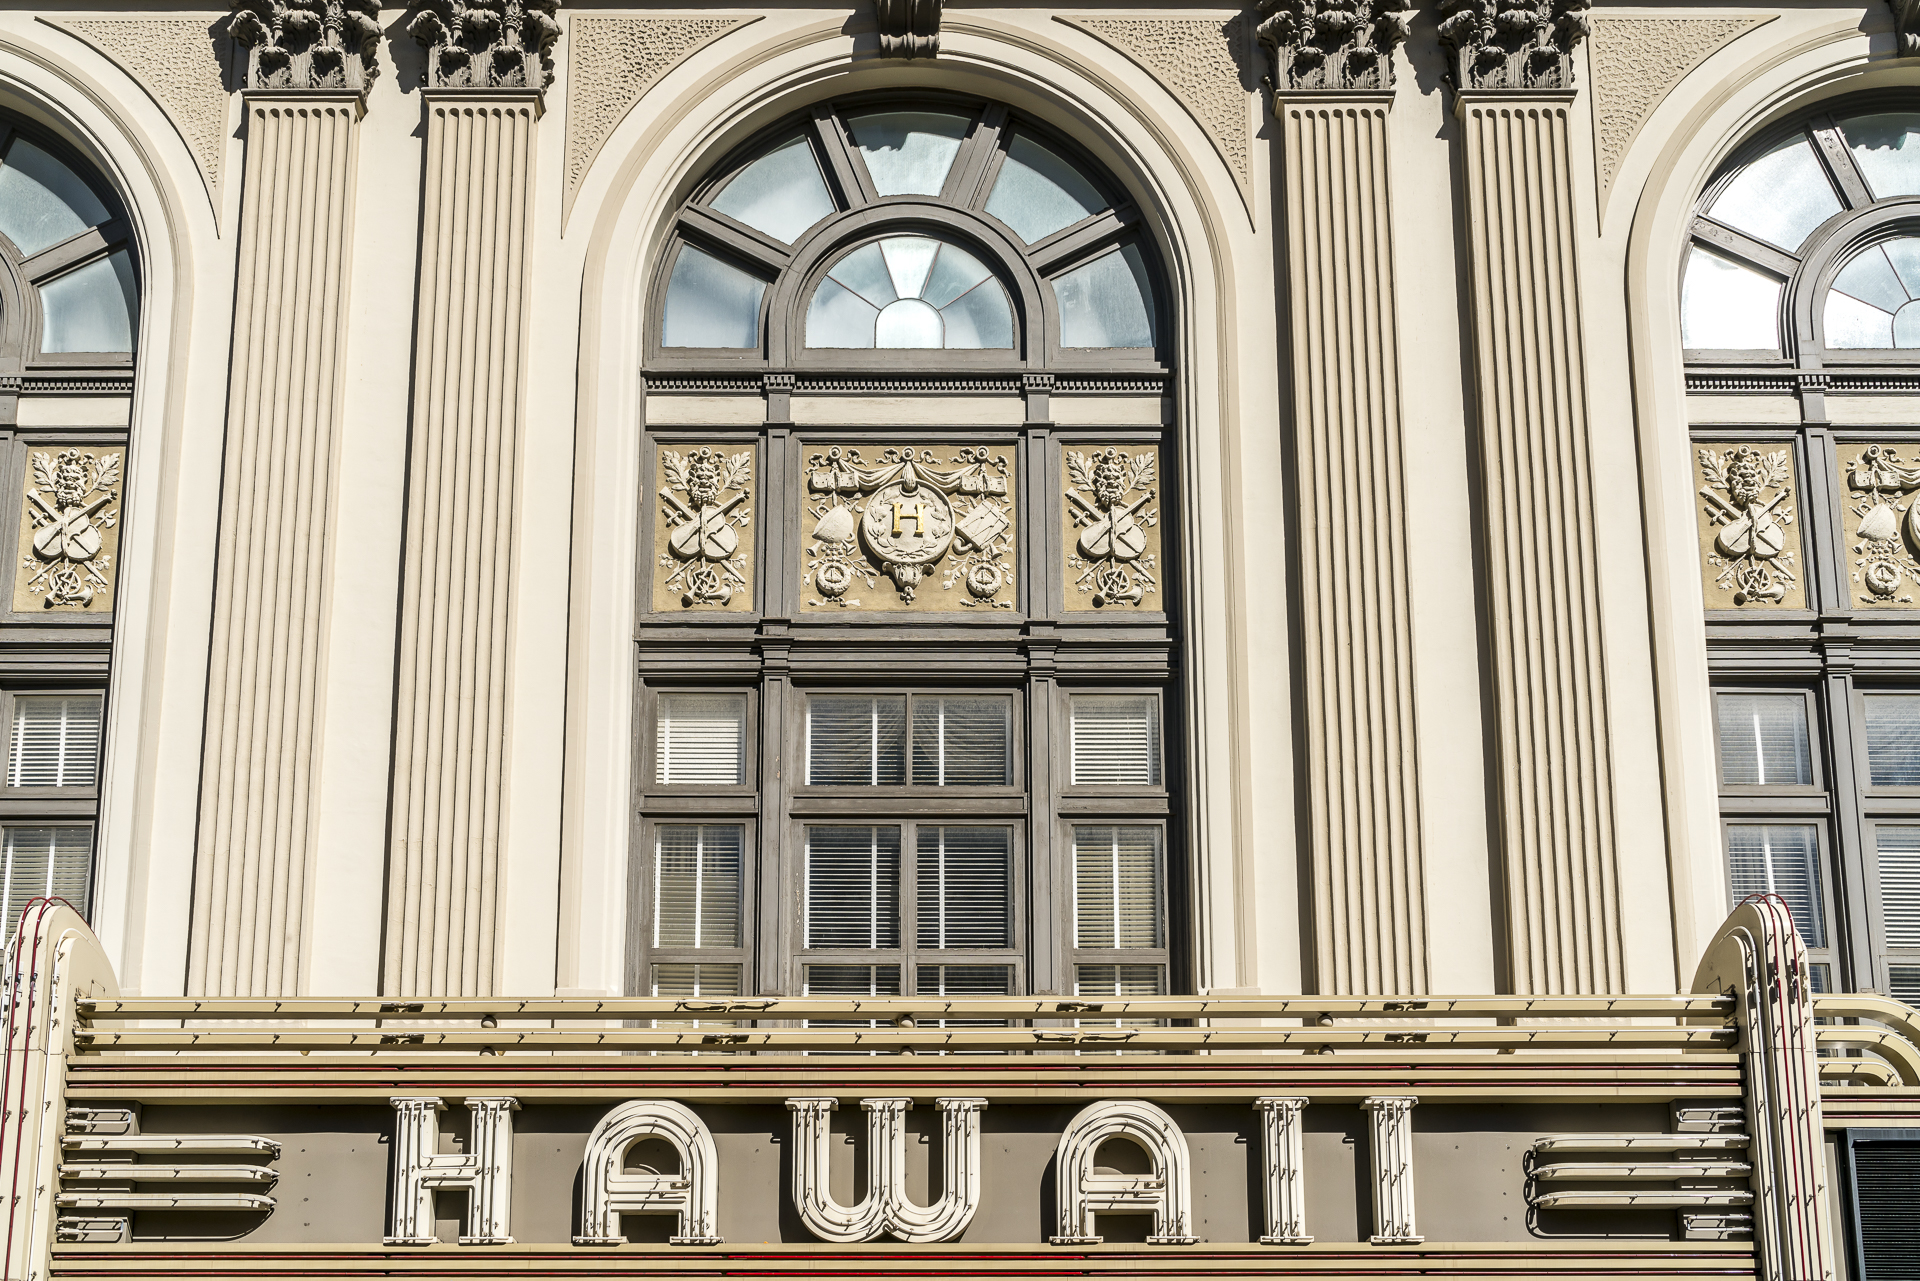 Honolulu Theater